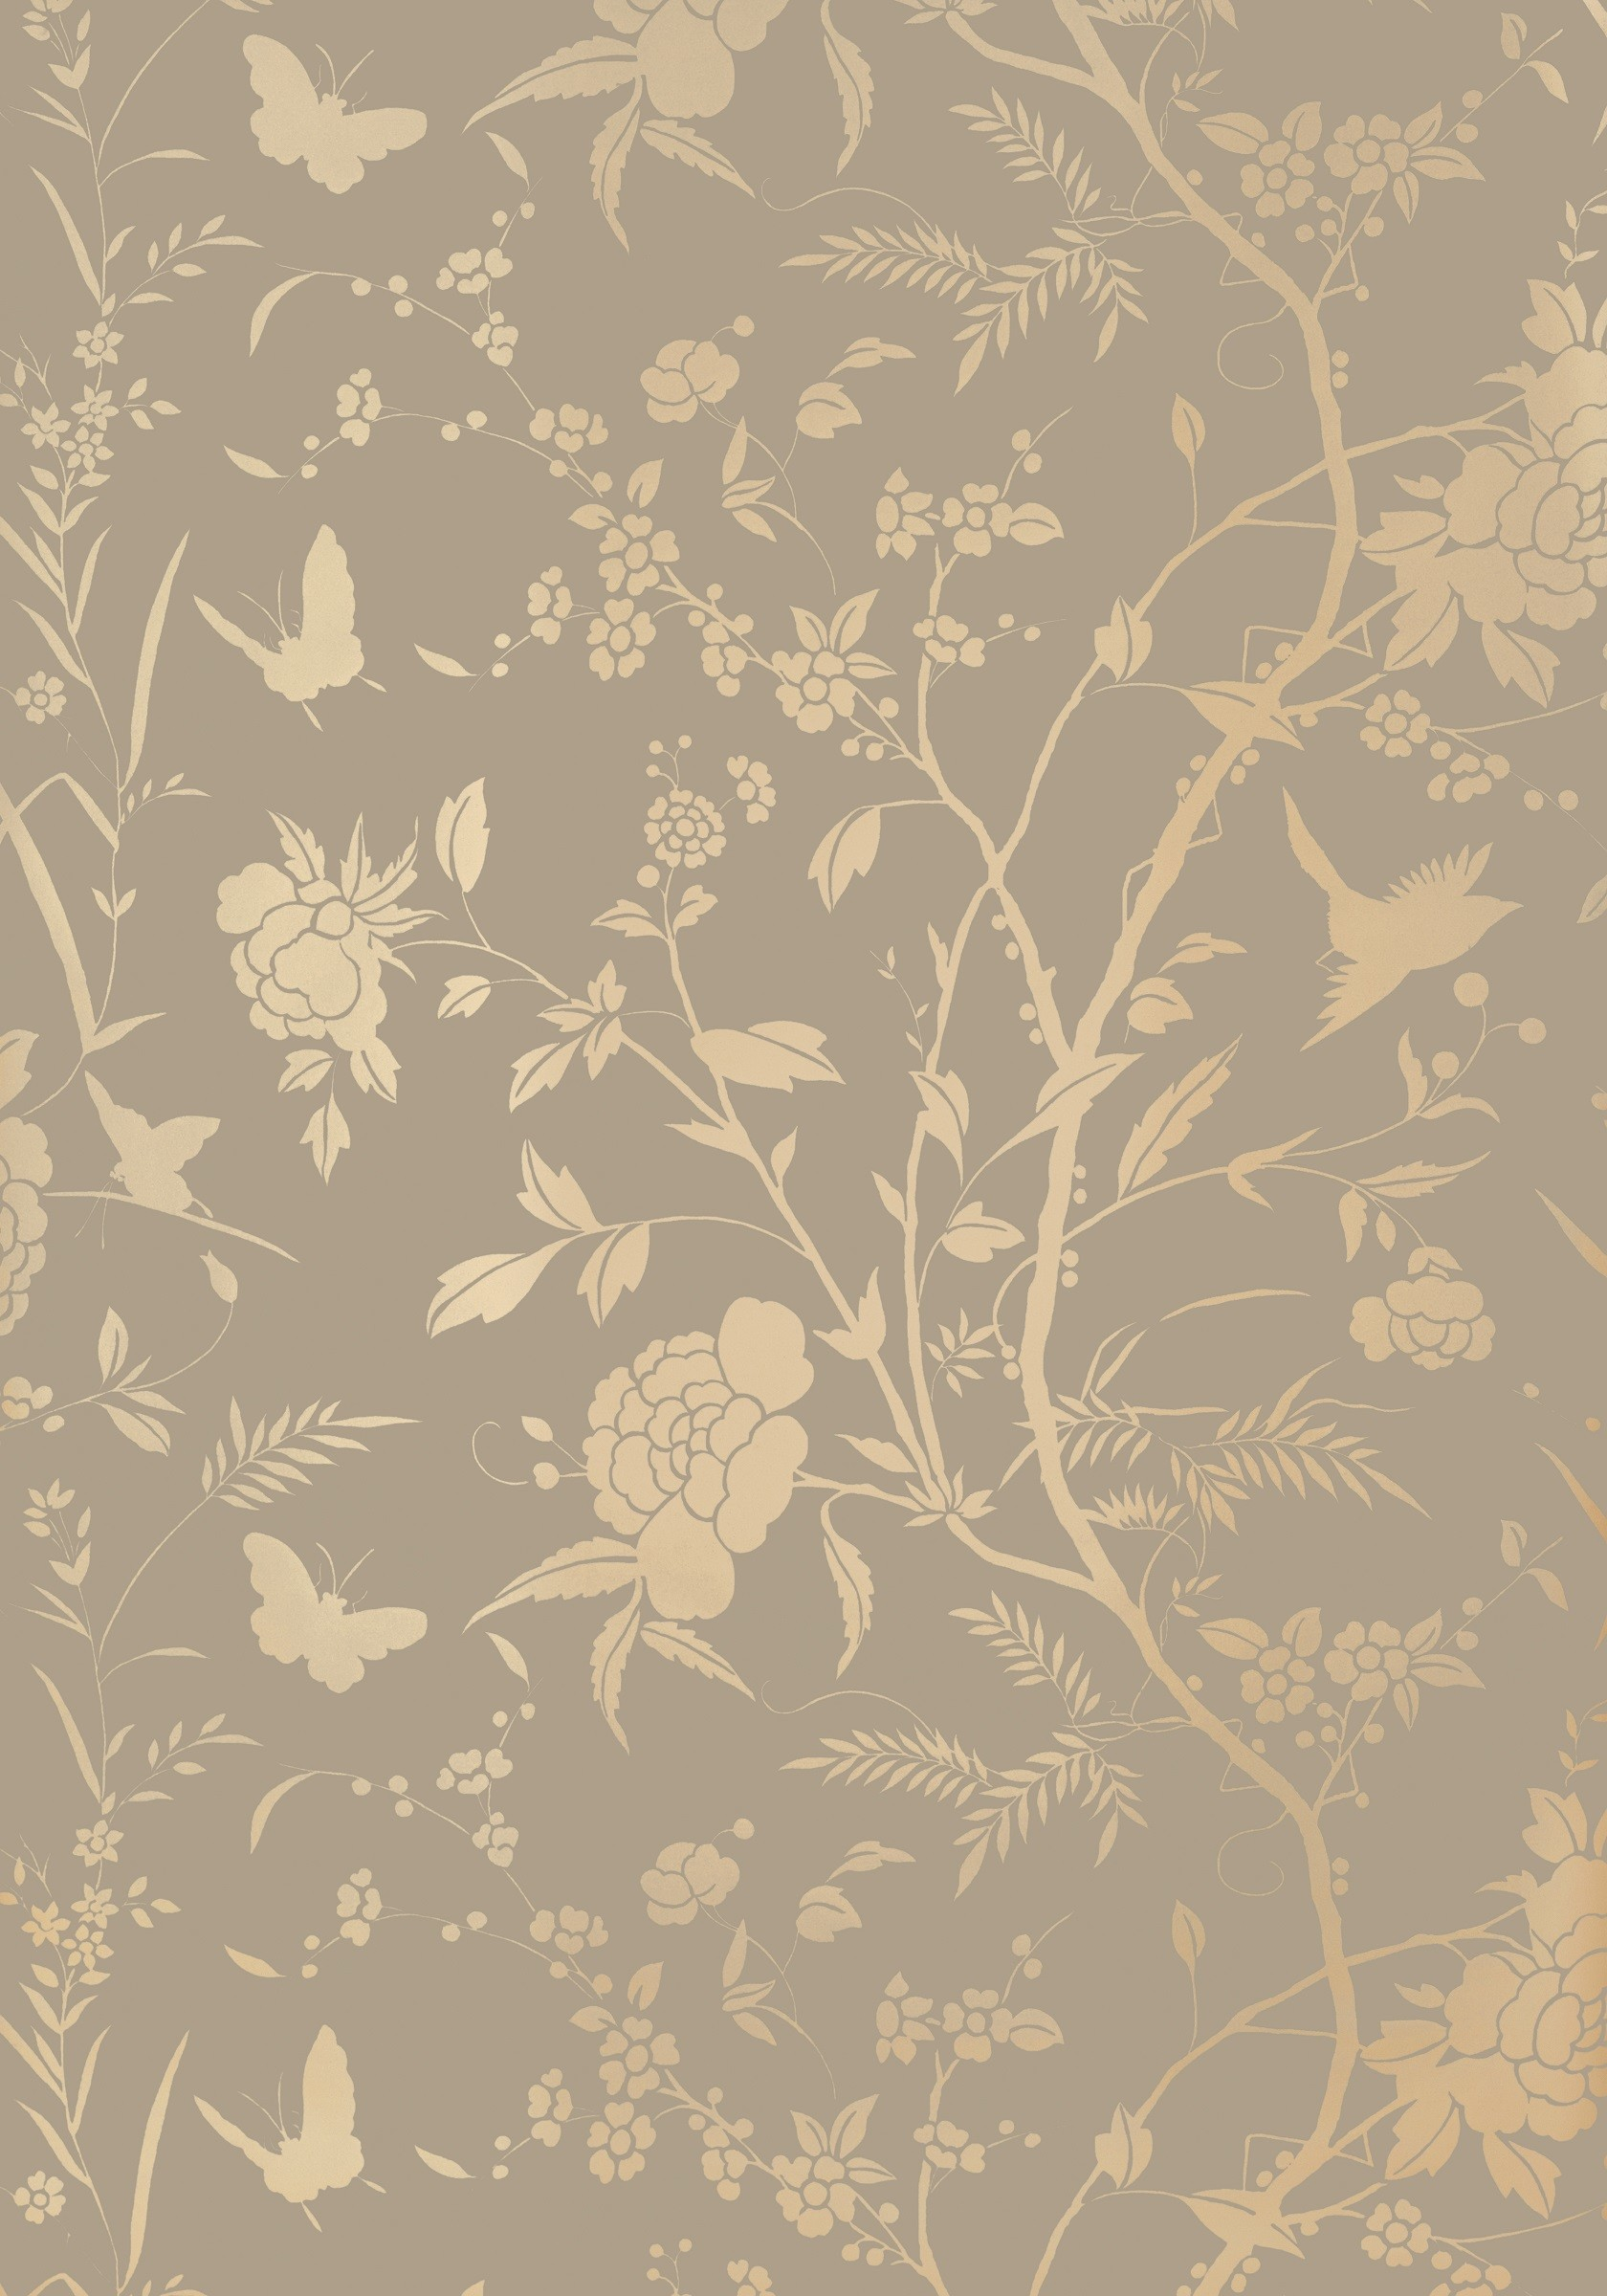 Gold Foil Wallpaper 49 Images